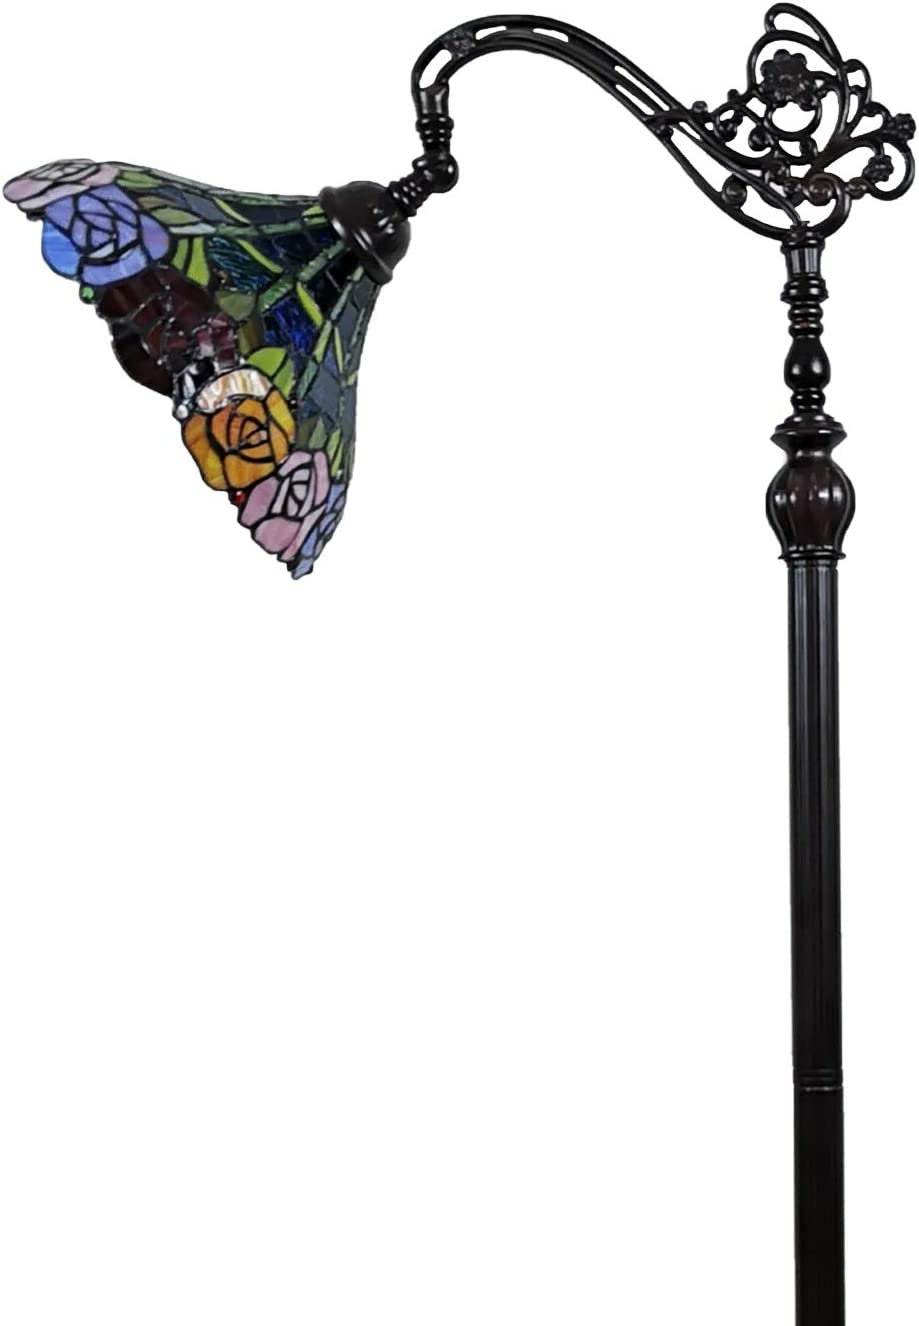 Tiffany Style Floor Lamp Arched Standing 62 Tall Stained Glass Red Yellow Green Rose Flower Antique Vintage Light Decor Bedroom Living Room Reading Gift AM035FL12B Amora Lighting, Multicolored